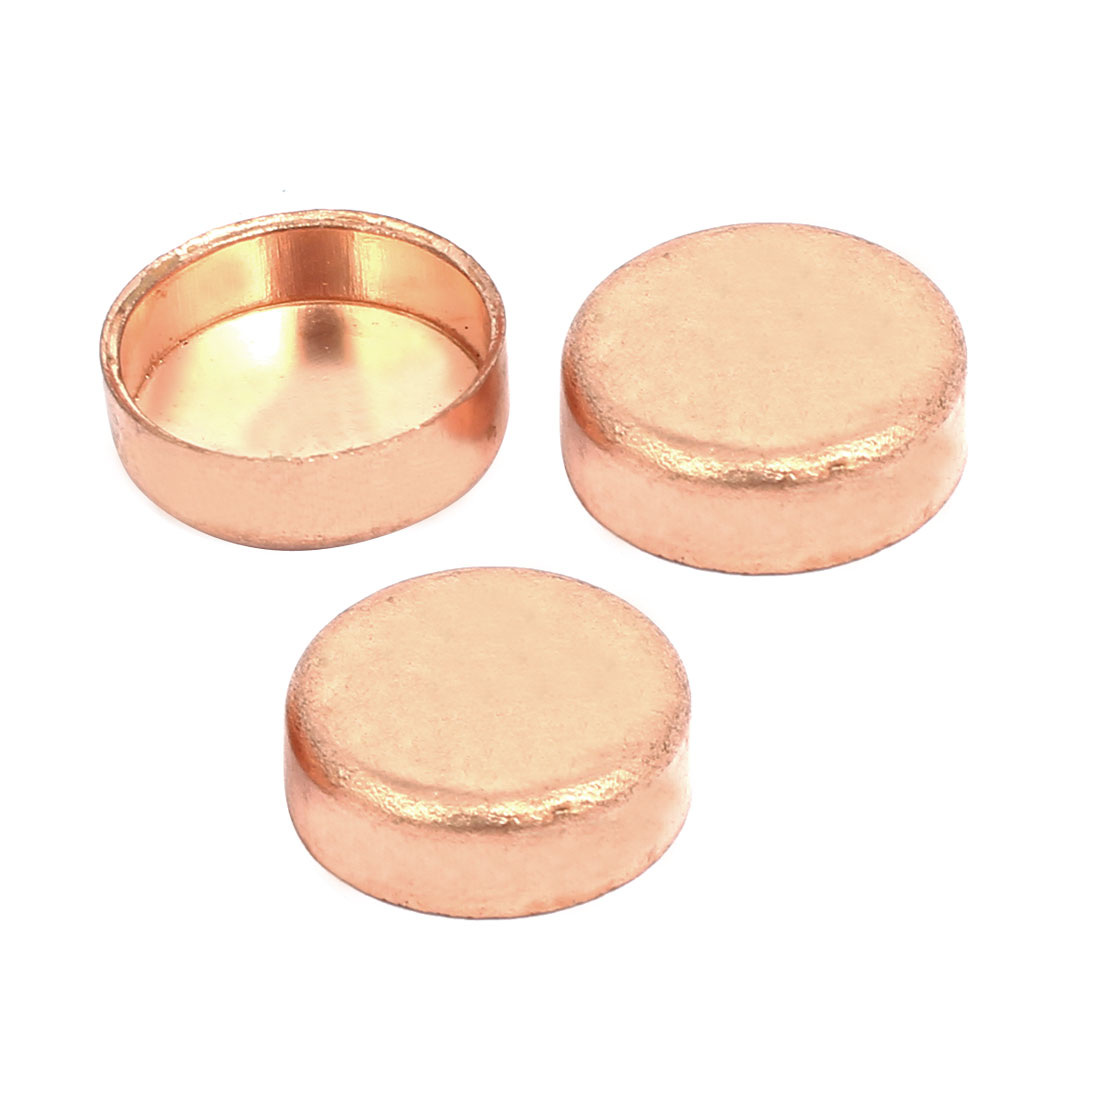 16mmx1mm Copper Pipe Tube End Cap Cover Plumbing Fitting 3pcs